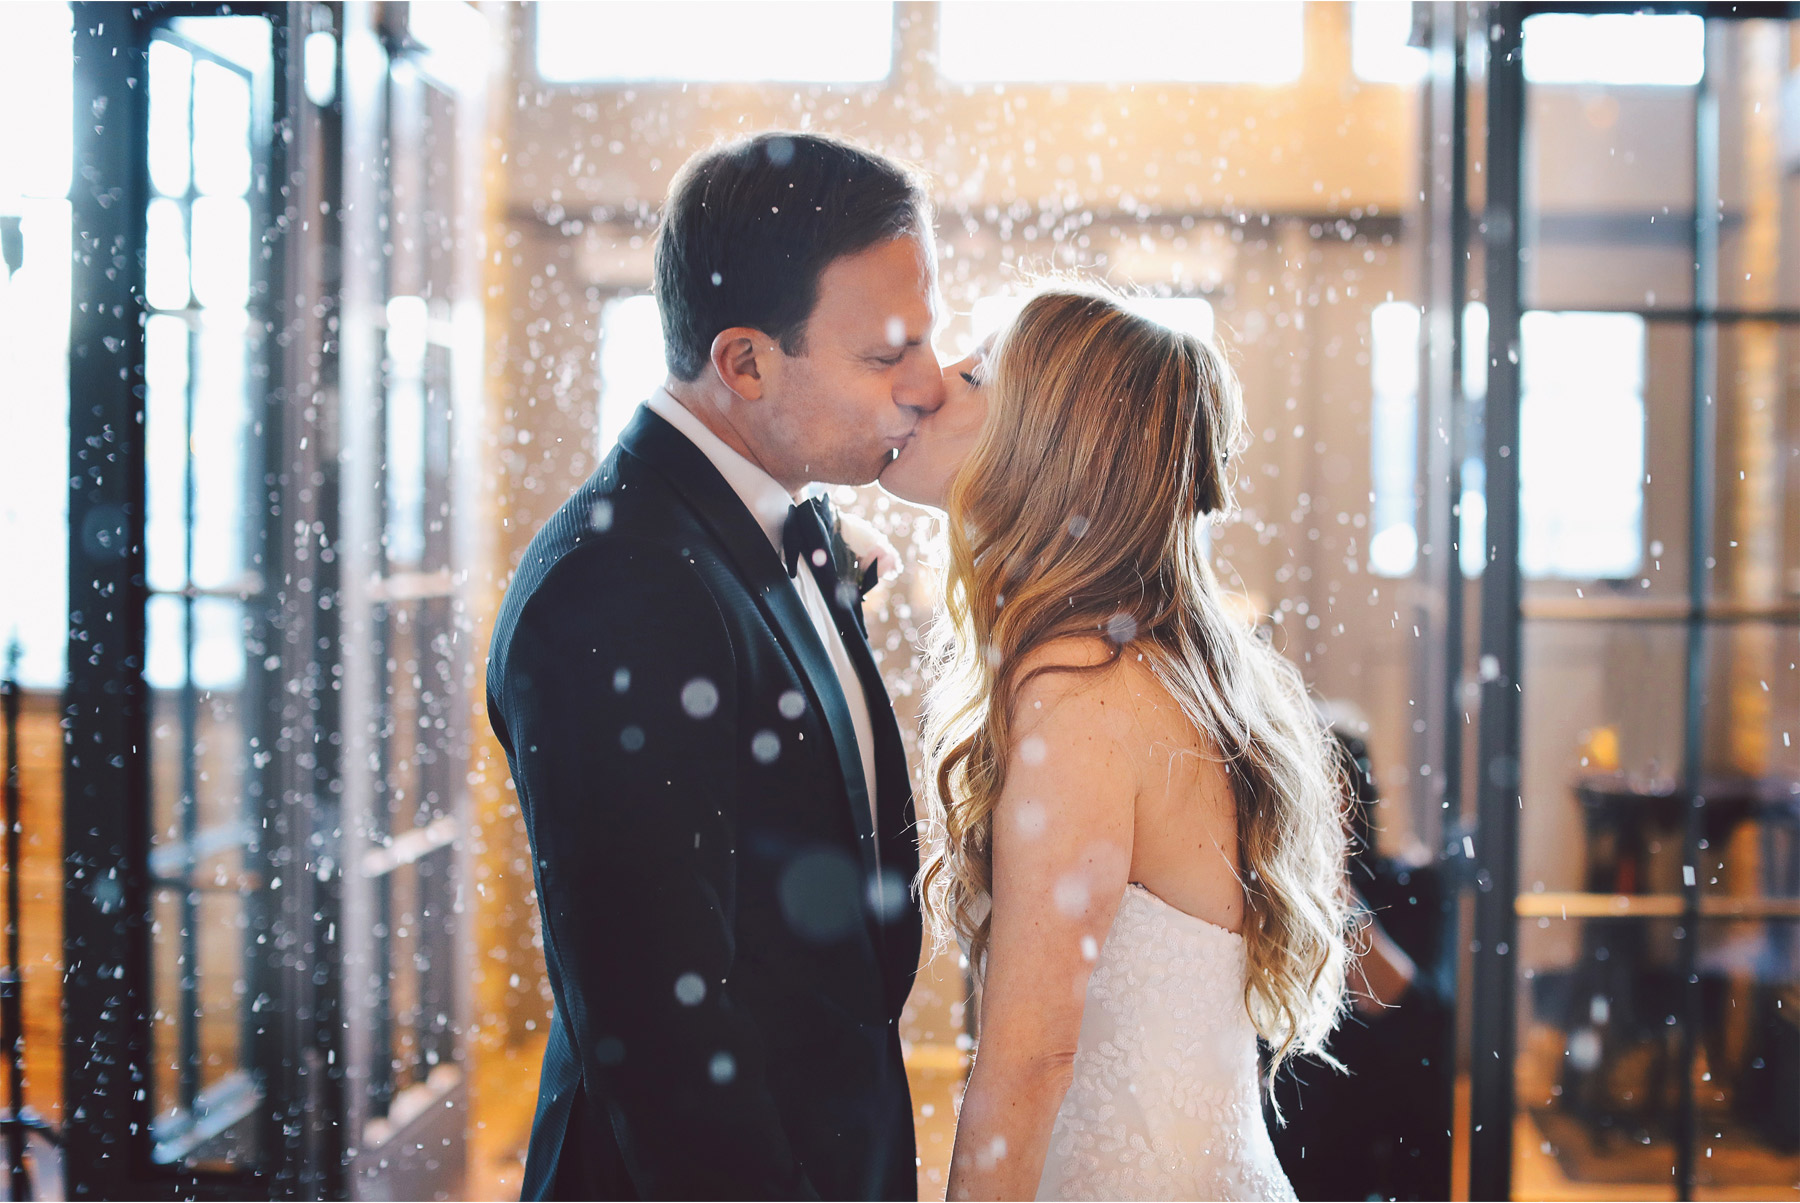 09-Minneapolis-Minnesota-Wedding-Photographer-by-Vick-Photography-Indoor-Snow-Bride-and-Groom-Winter-Wedding-Machine-Shop-Alyssa-and-Garron.jpg